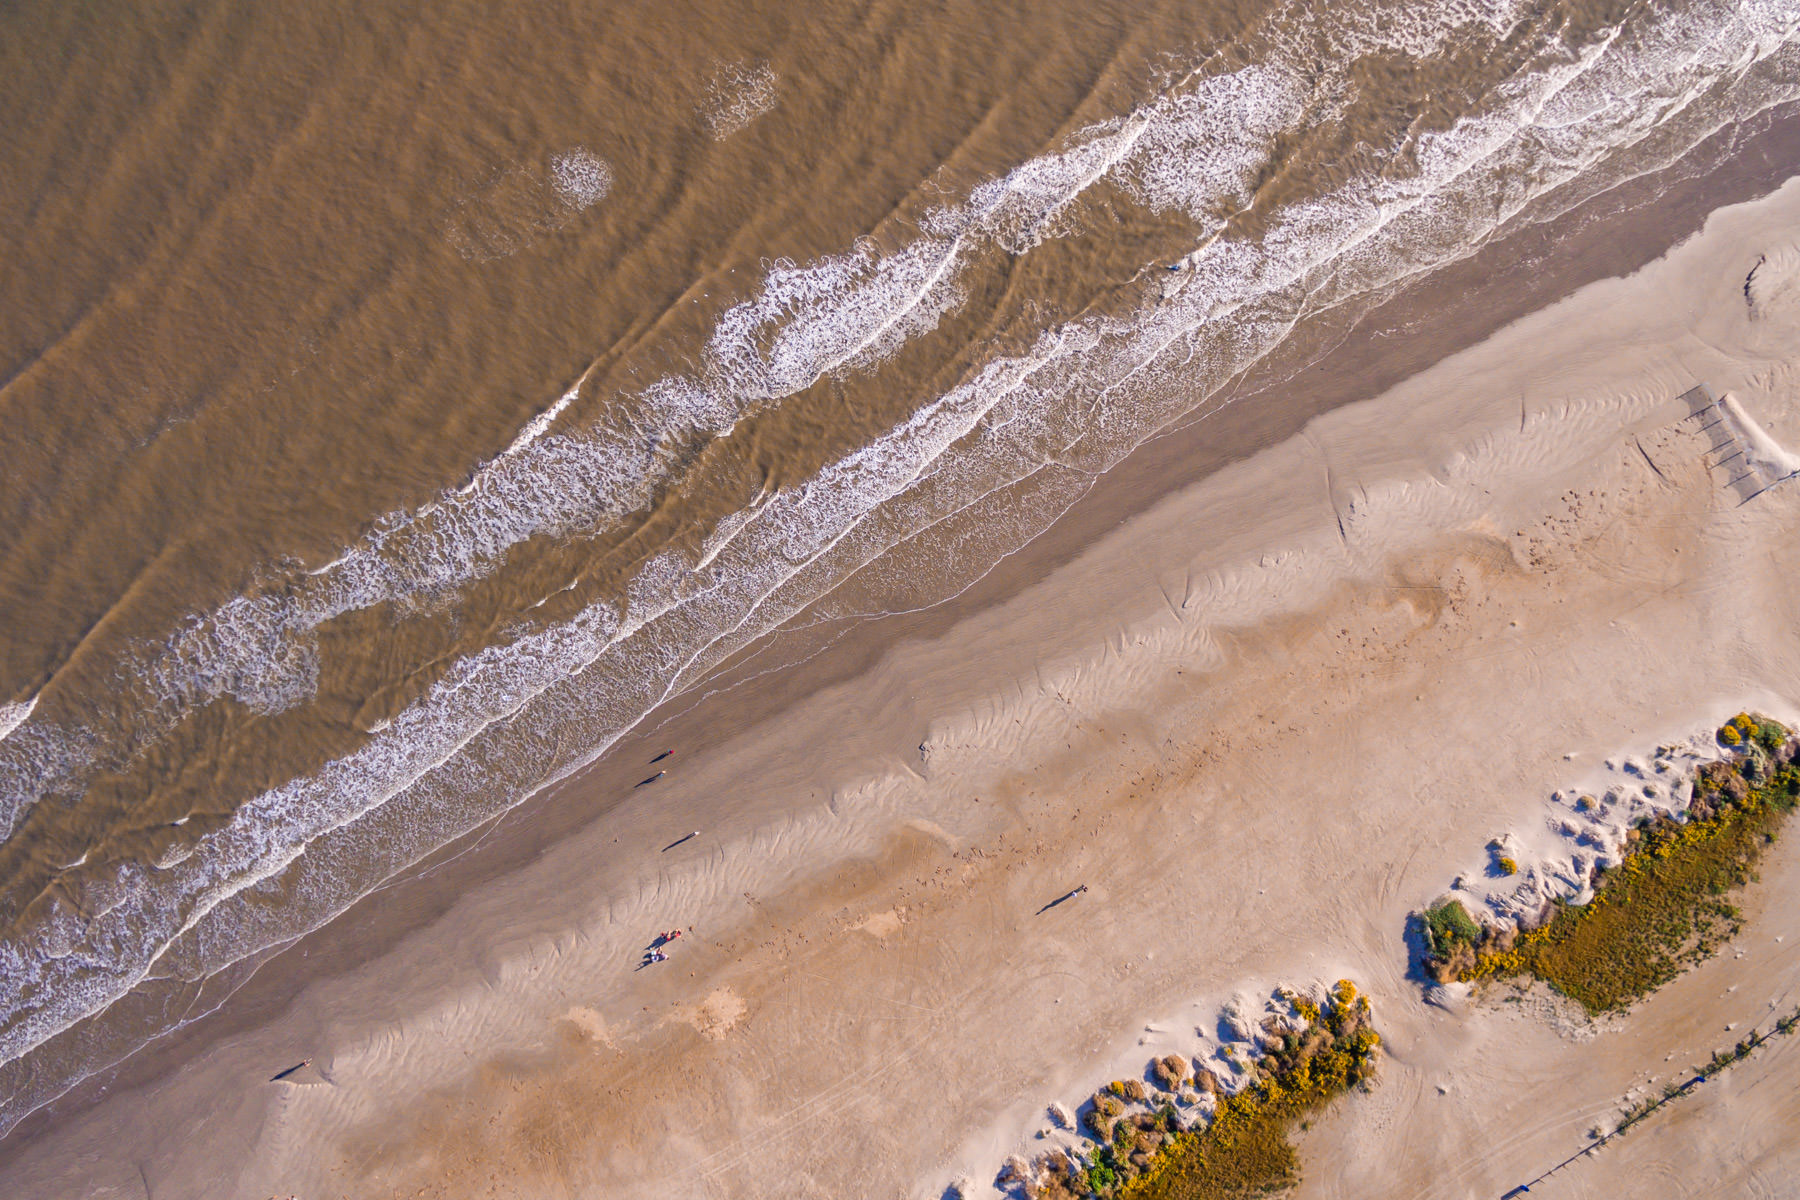 Waves crash onshore in an aerial shot of Galveston, Texas' East Beach.